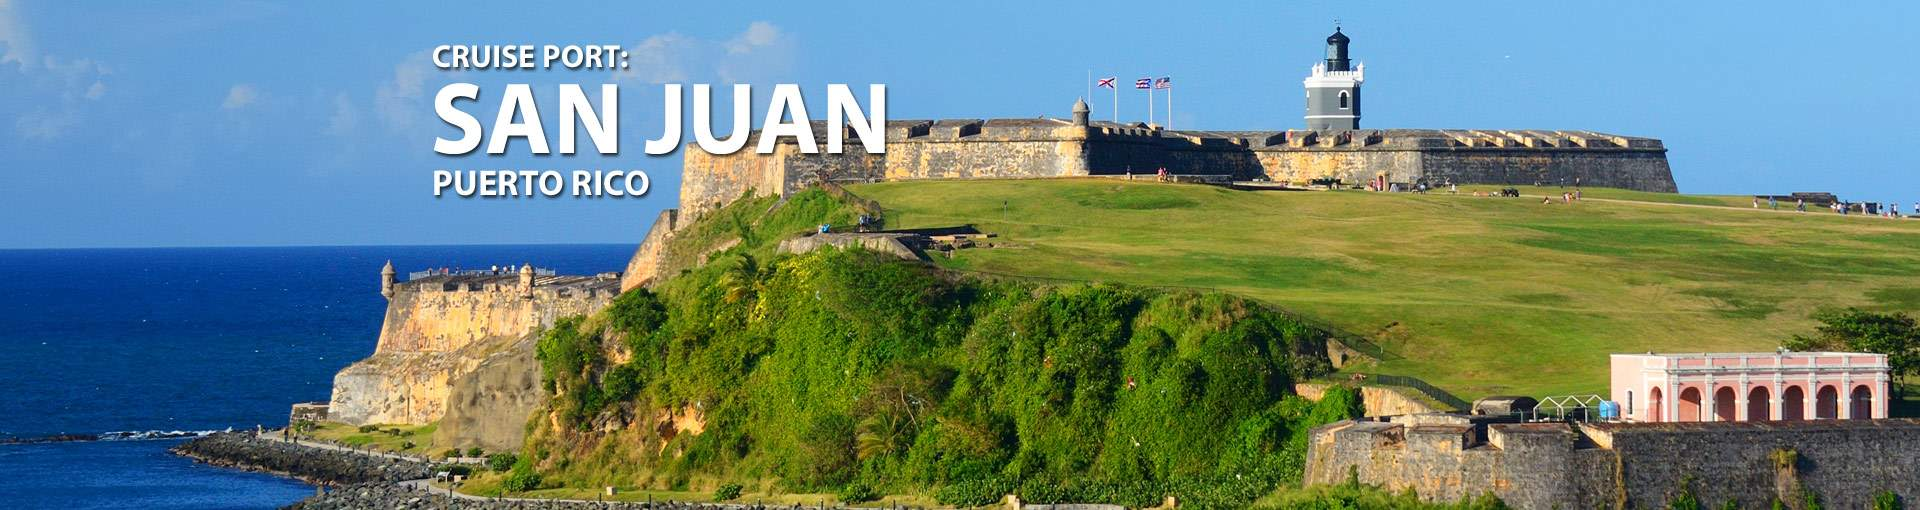 Cruises from San Juan, Puerto Rico